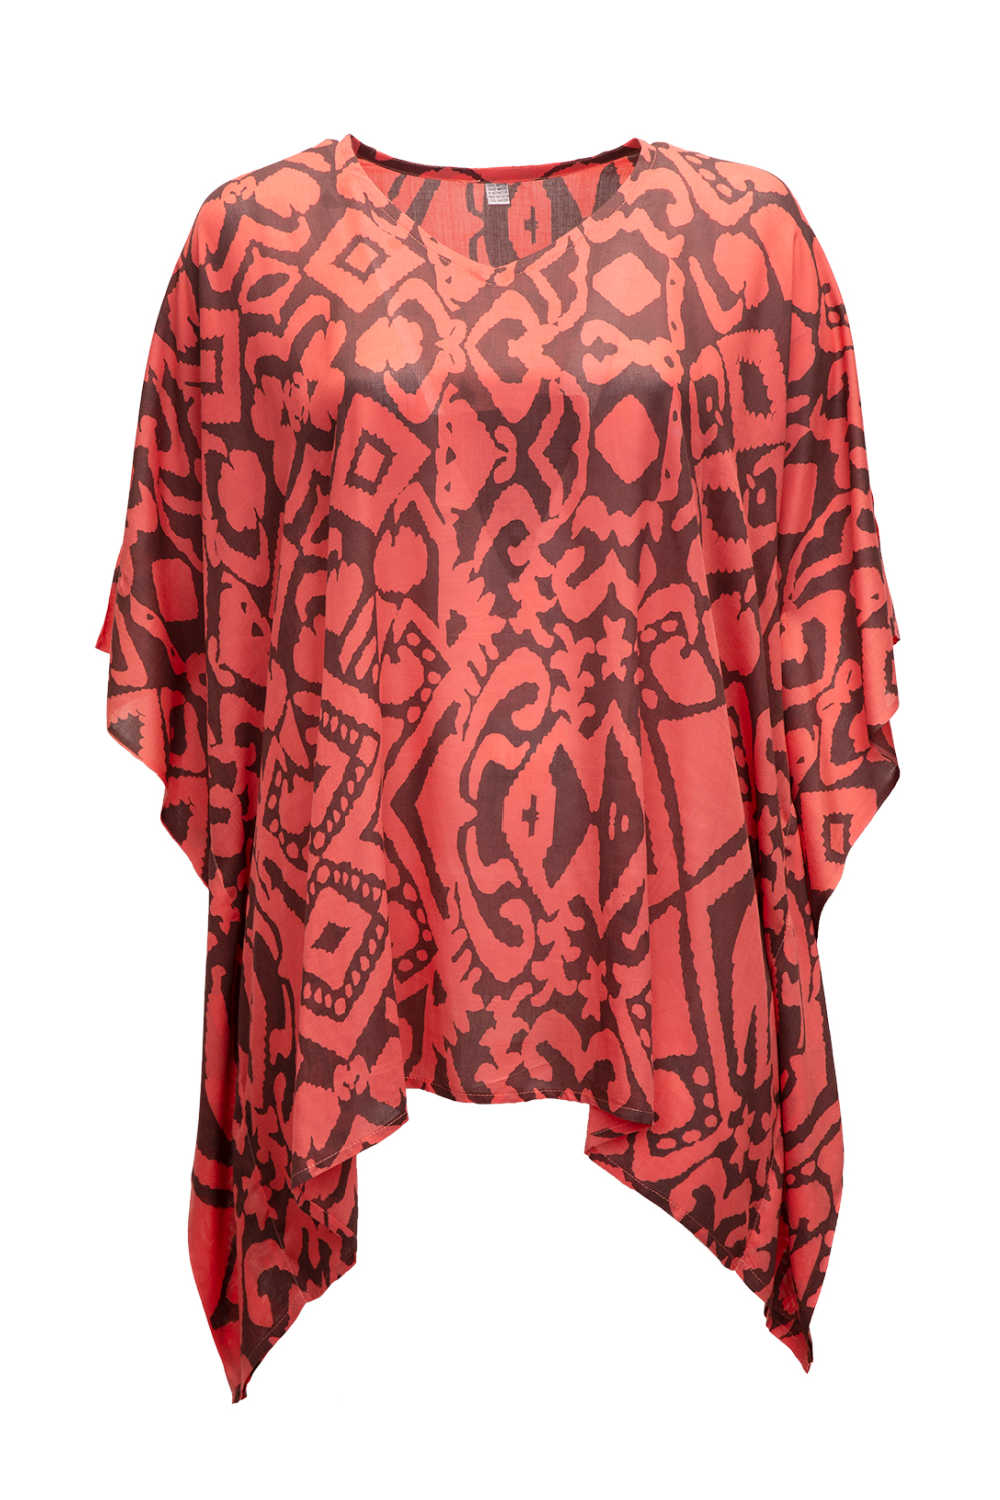 ladies-kaftan-top-salmon-red-brown-geometric-print